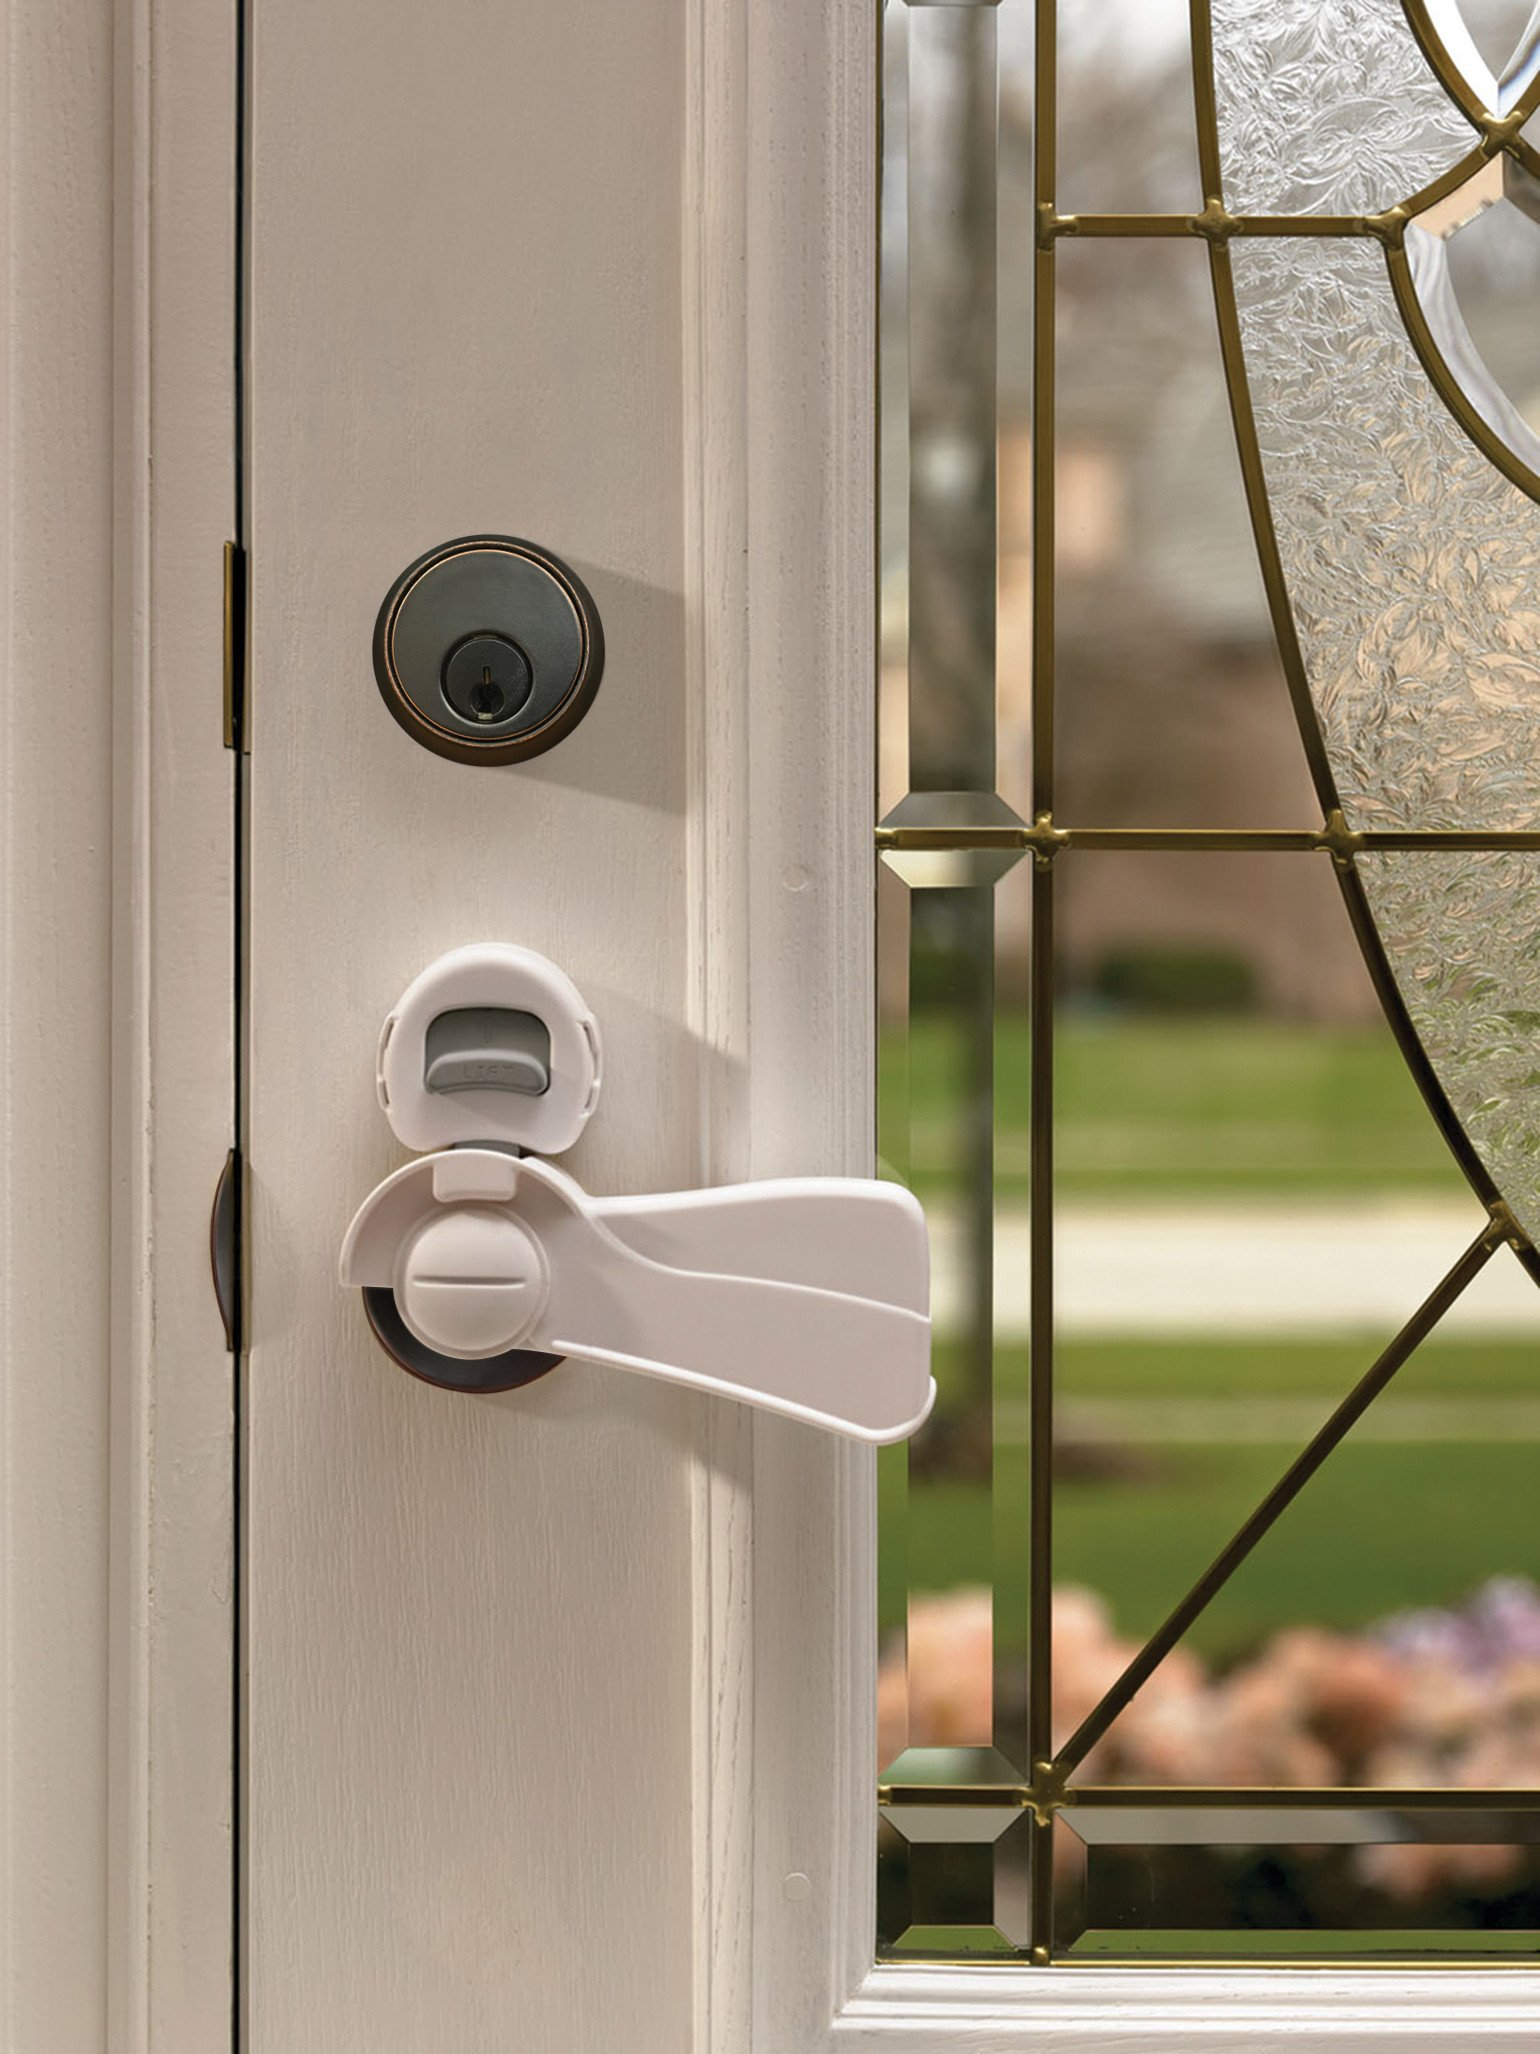 Bedroom Door Knobs with Locks Lovely Door Lever Lock